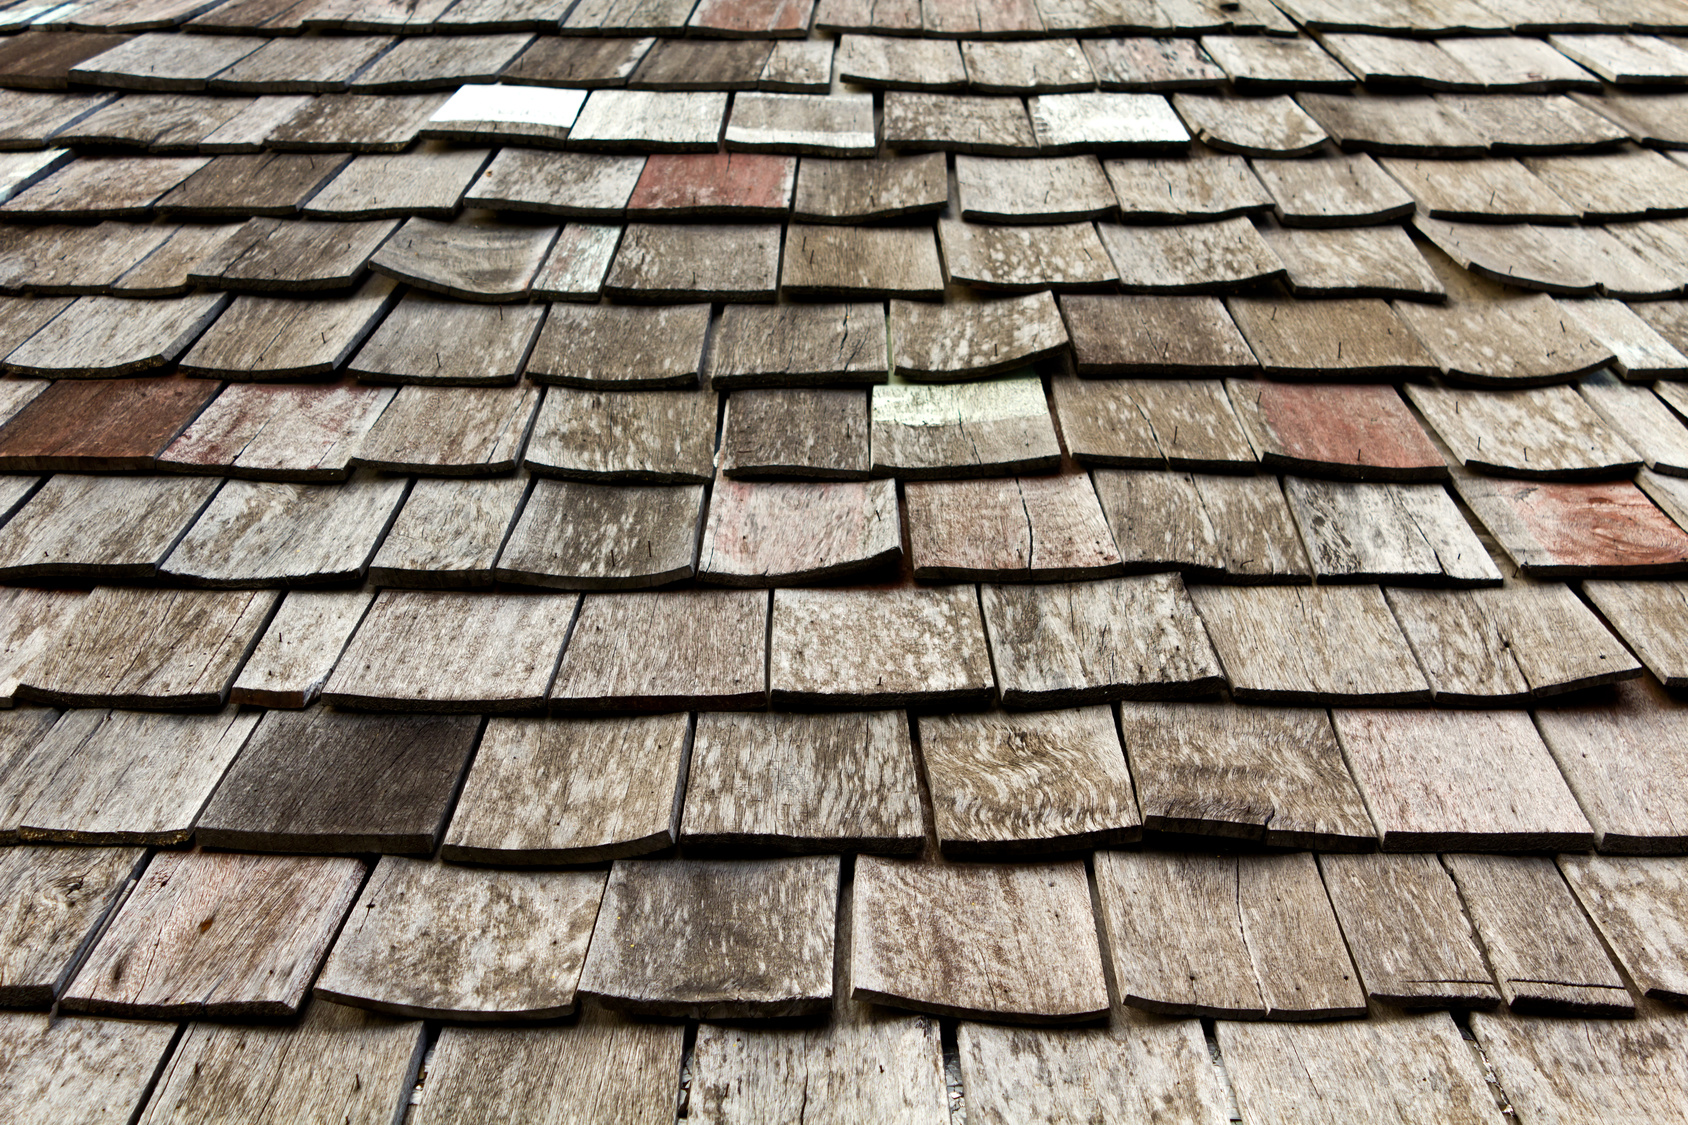 Roof Damage? Here's What to Look For